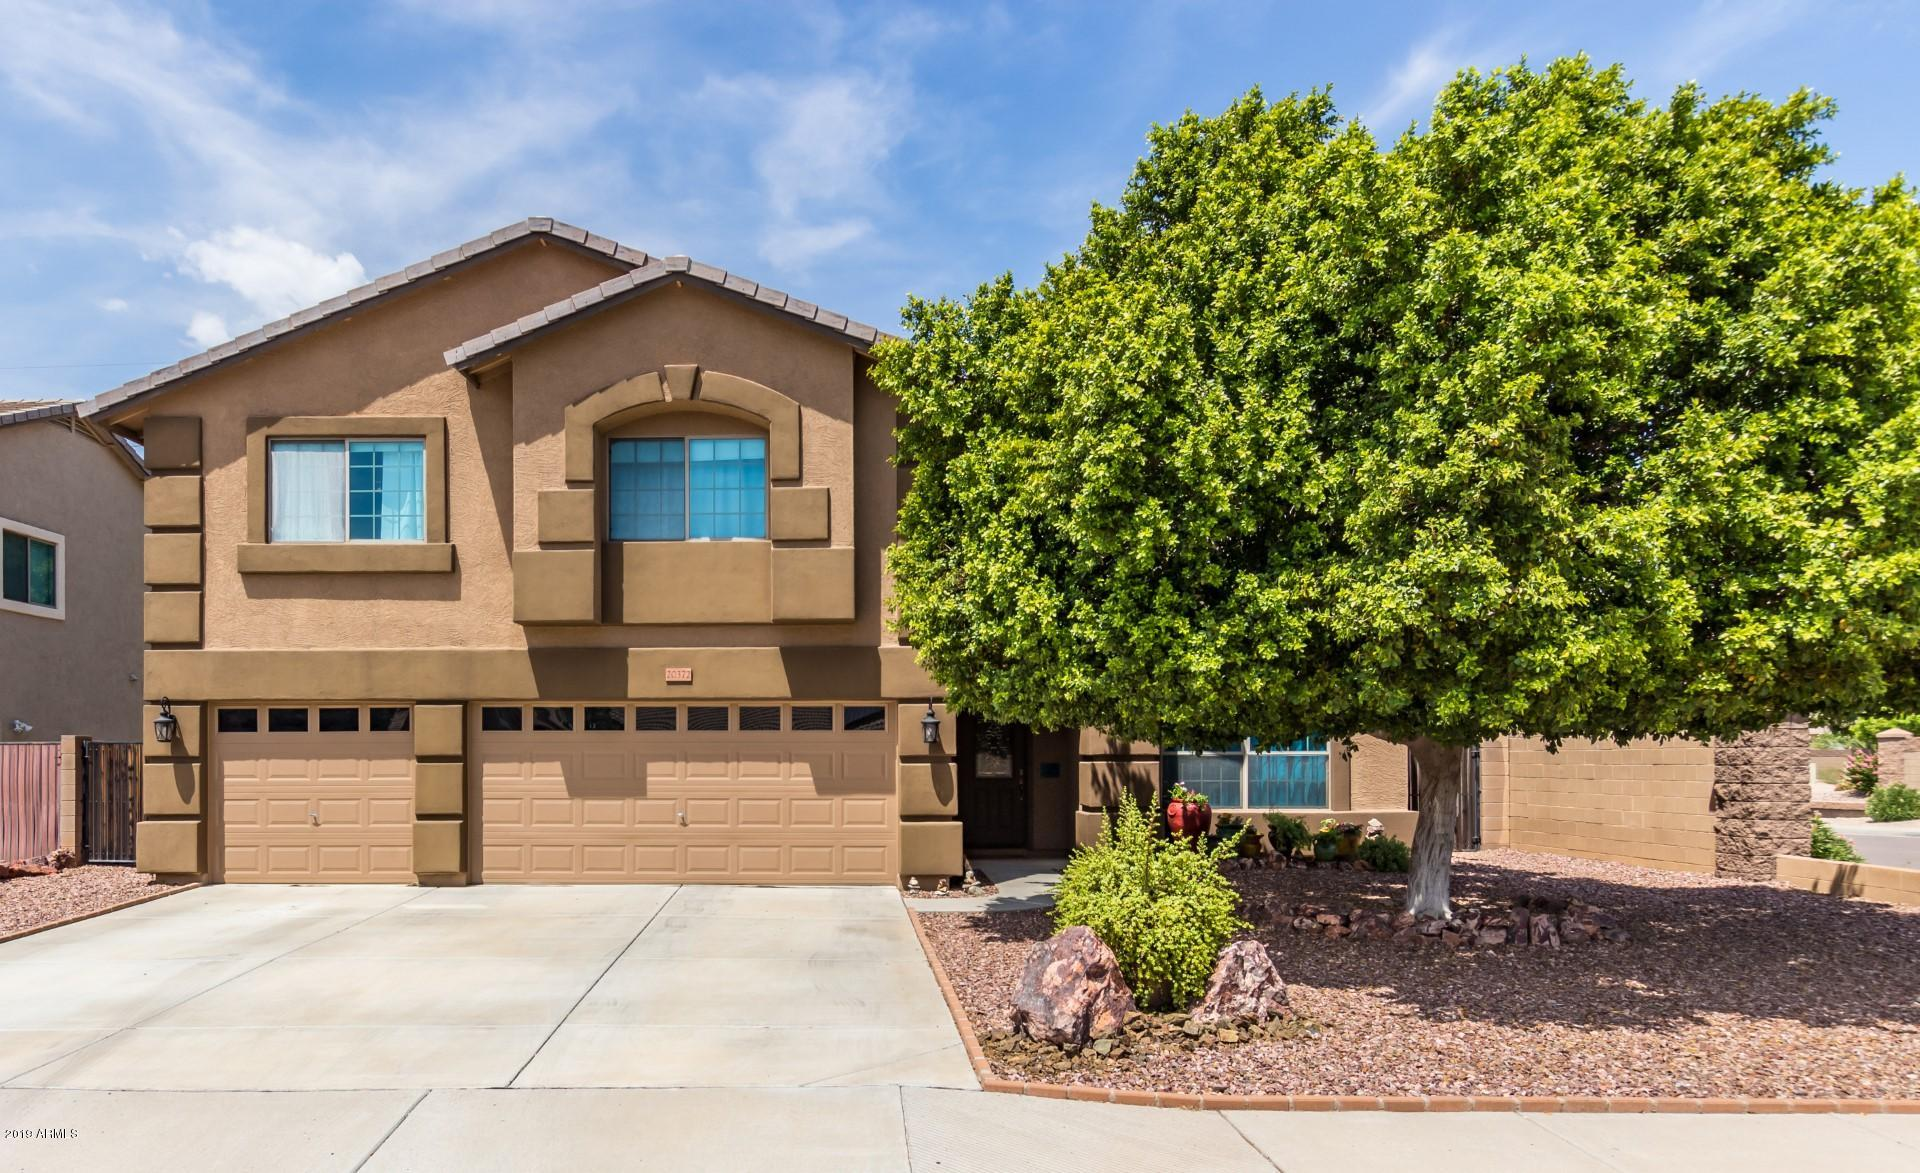 20372 N 90TH Lane, Peoria, Arizona